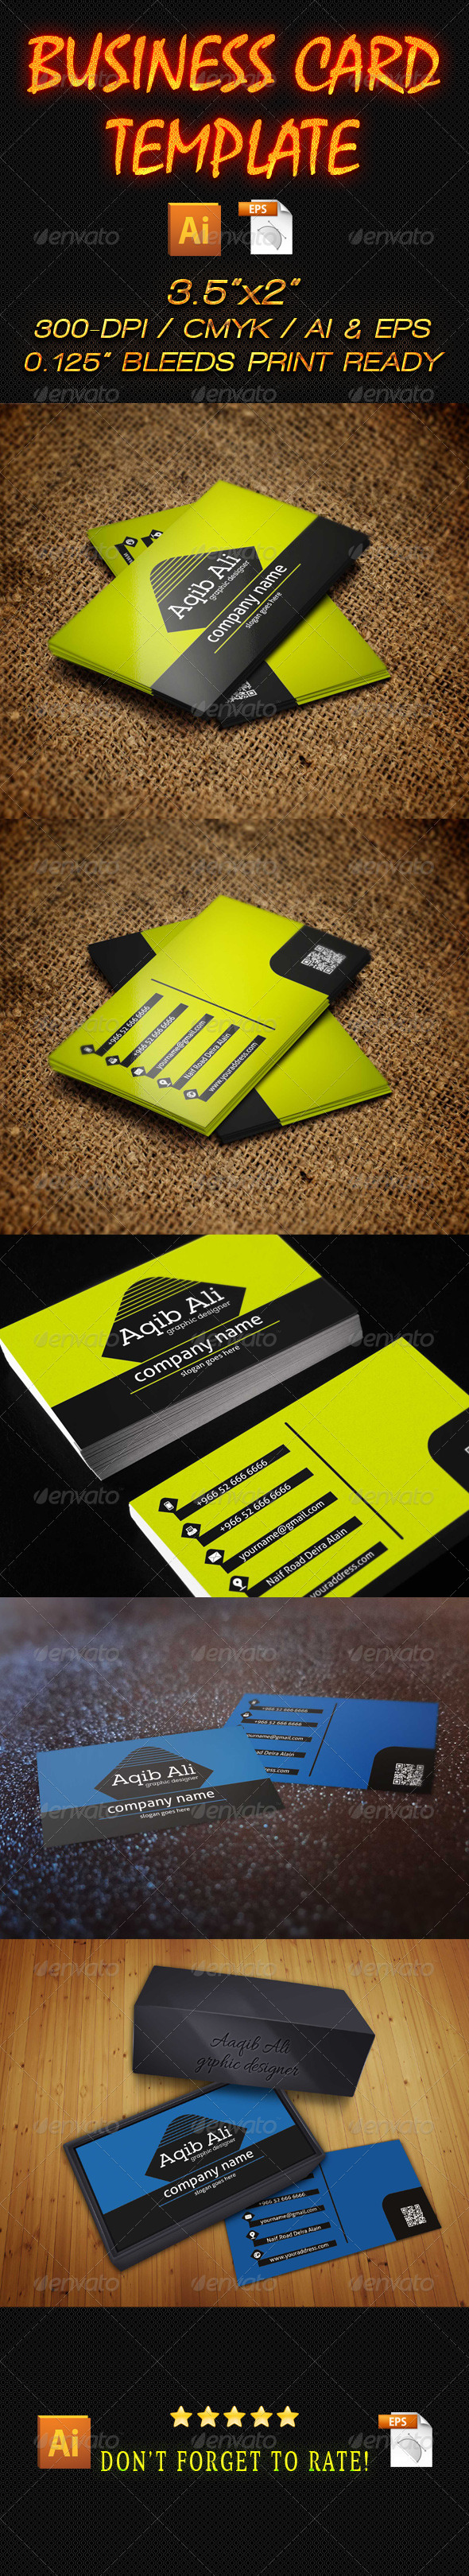 Business Card 16 - Business Cards Print Templates